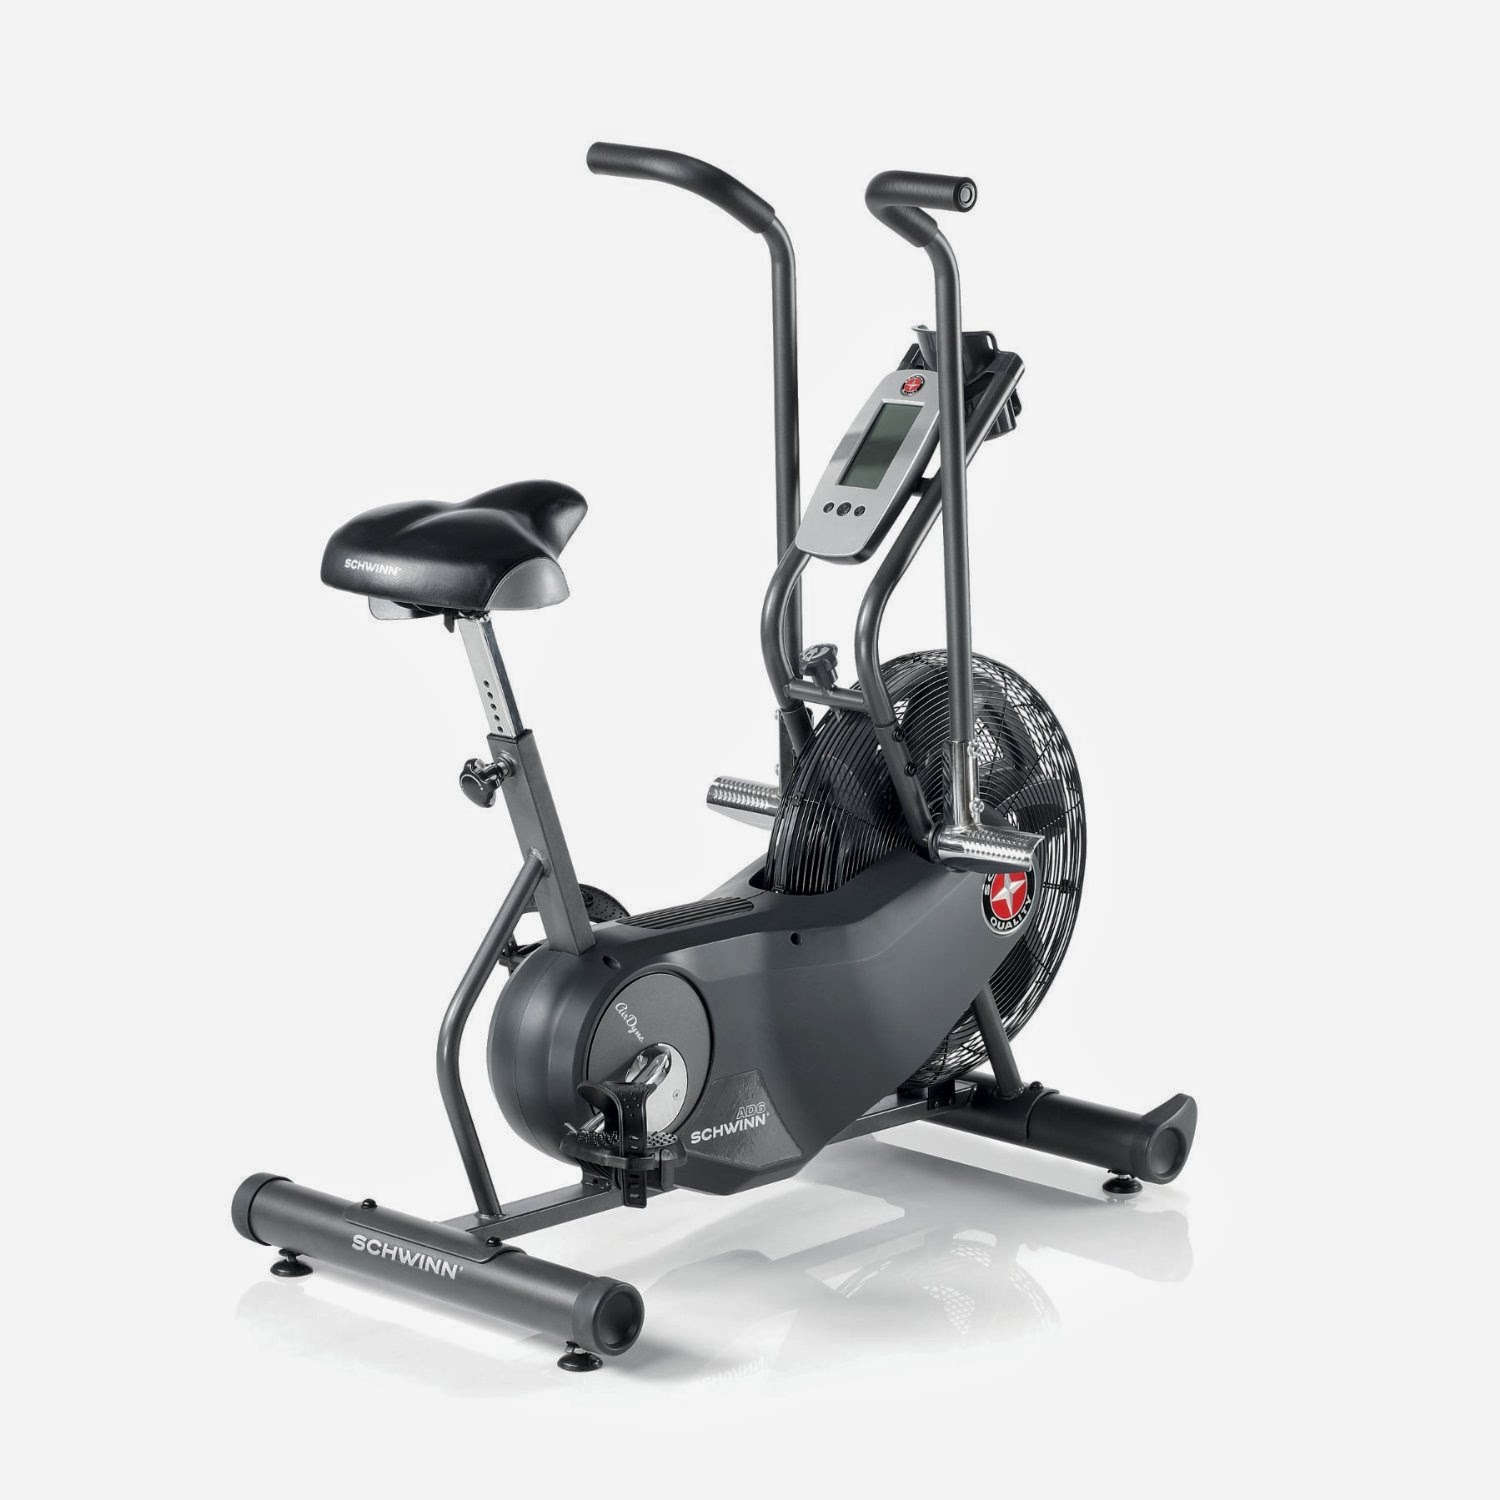 Schwinn AD6 Airdyne Bike, picture, review features & specifications, compare with Schwinn AD2